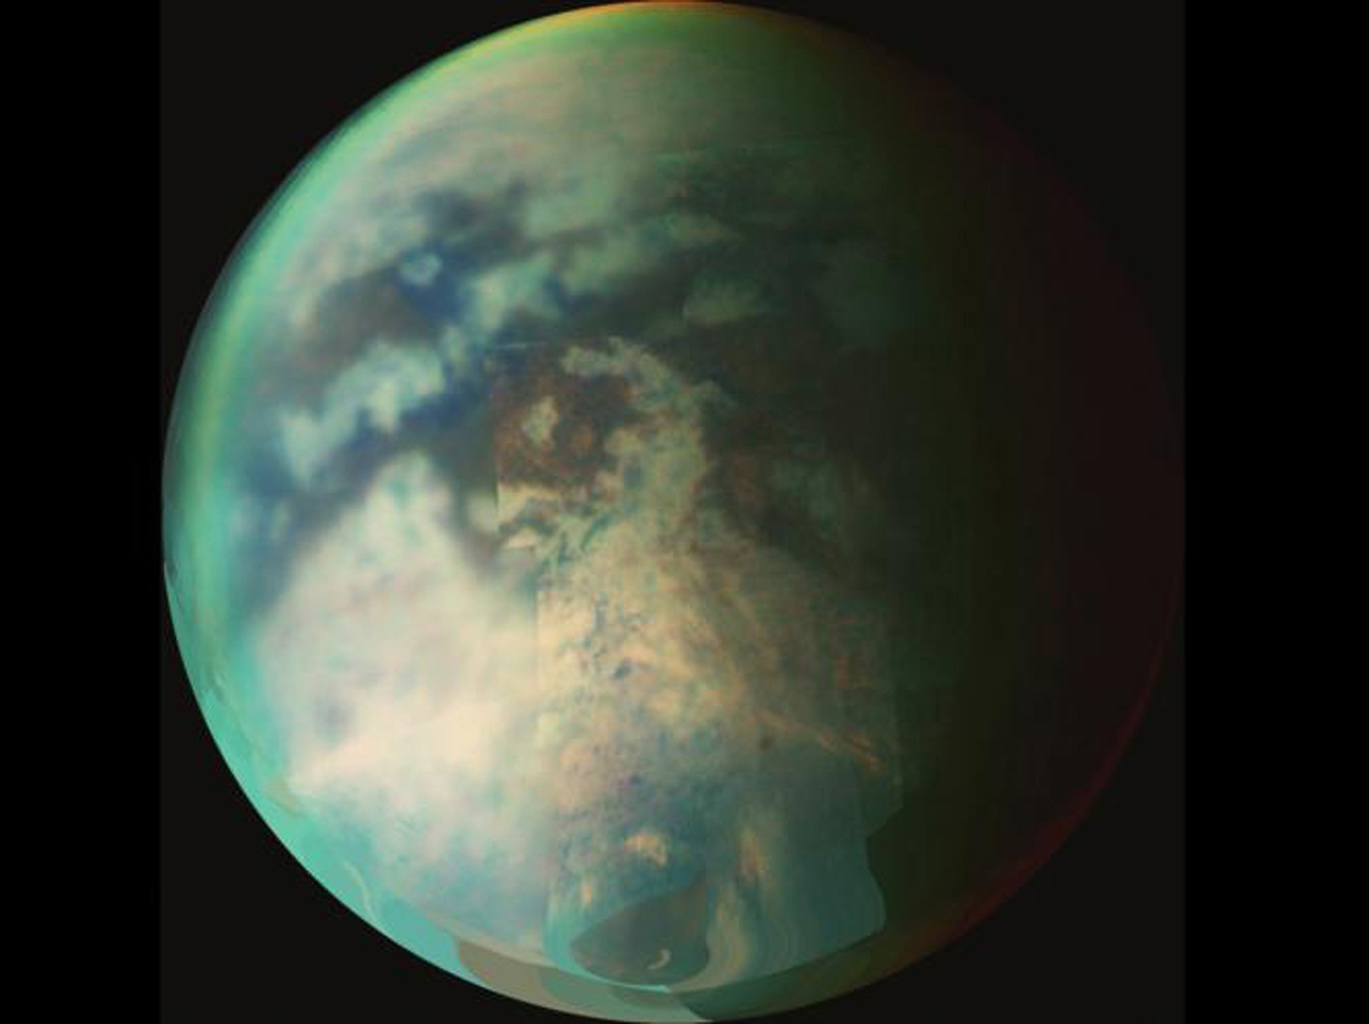 This image from NASA's Cassini spacecraft is a composite of several images taken during two separate Titan flybys on Oct. 9 (T19) and Oct. 25 (T20). The large circular feature near the center may be the remnant of a very old impact basin.